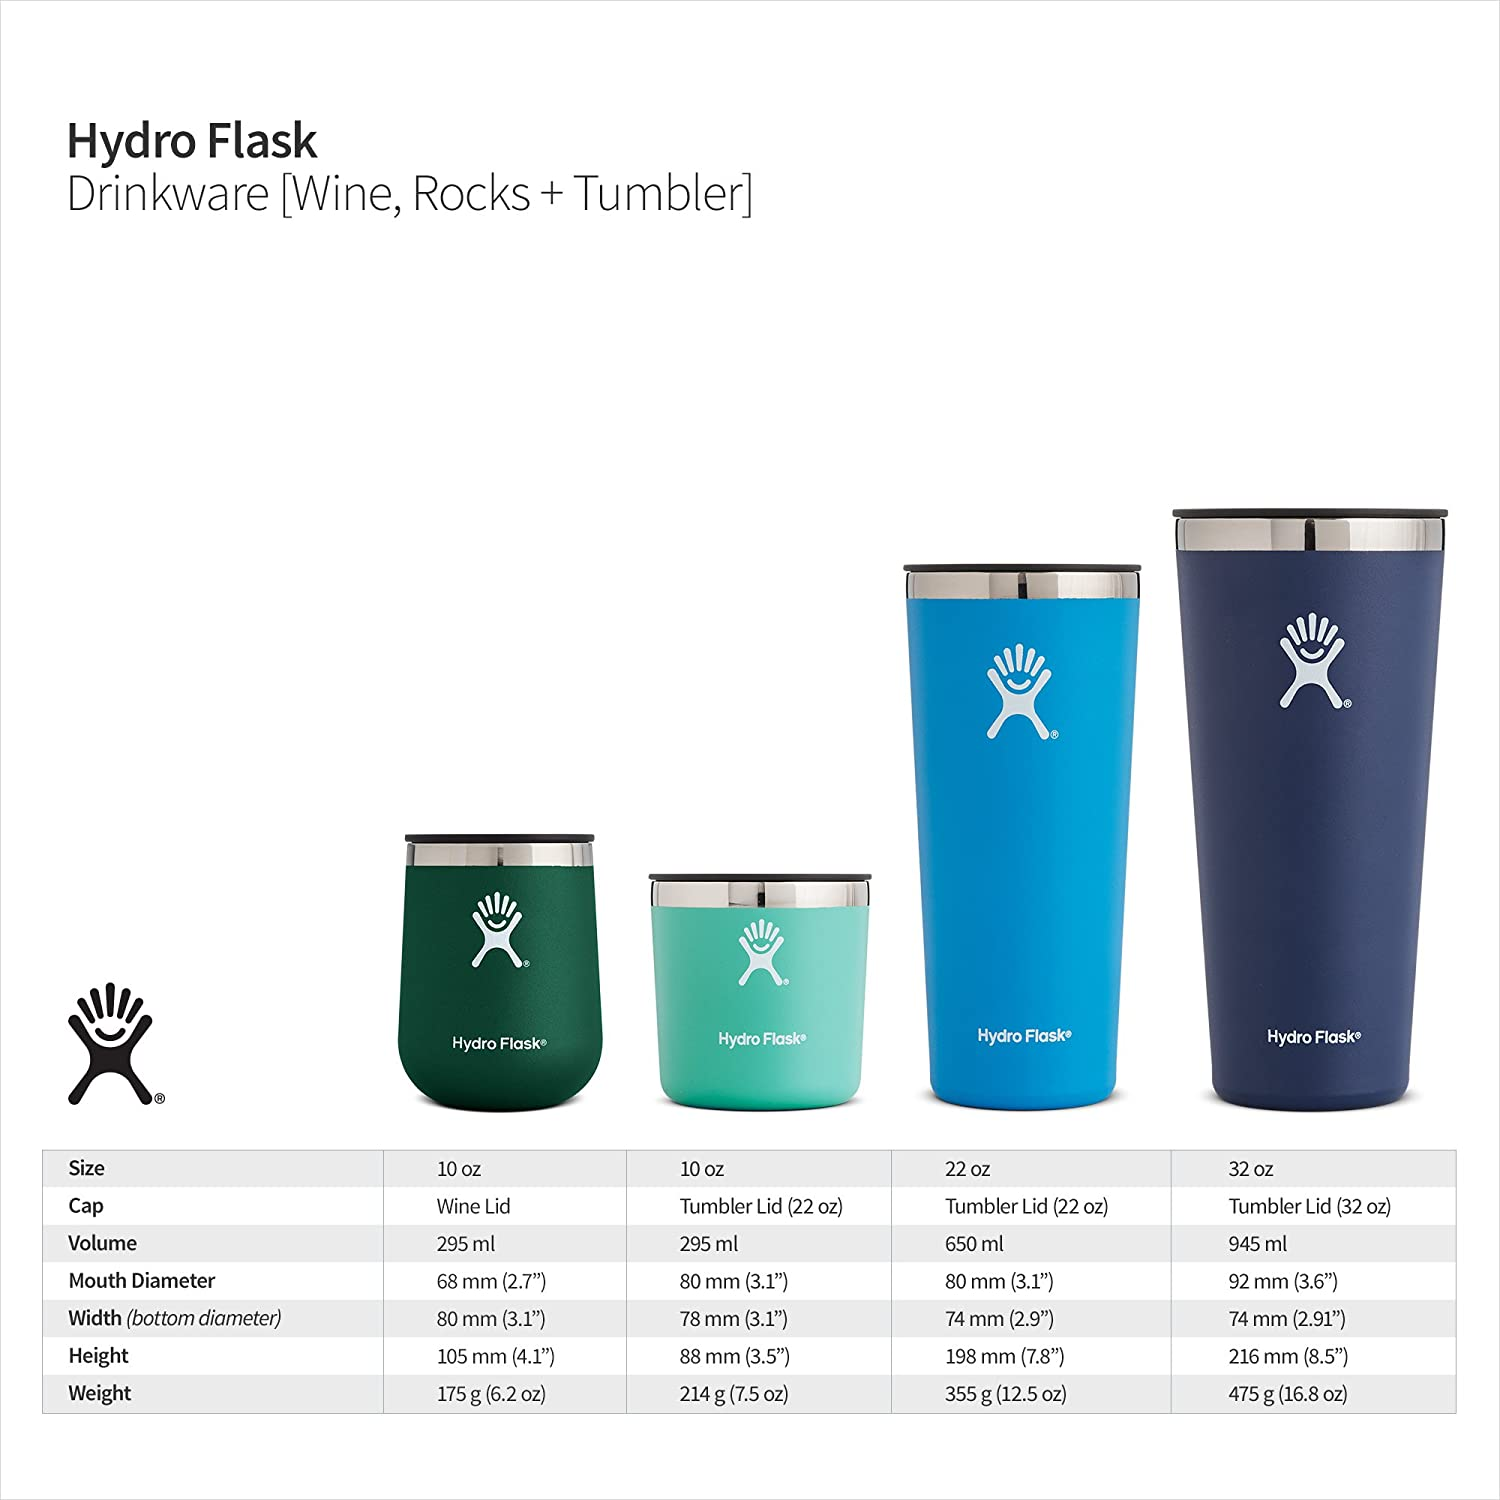 Hydro Flask 10 oz Double Wall Vacuum Insulated Stainless Steel Whiskey  Rocks Glass with BPA Free Press-In Lid, Black